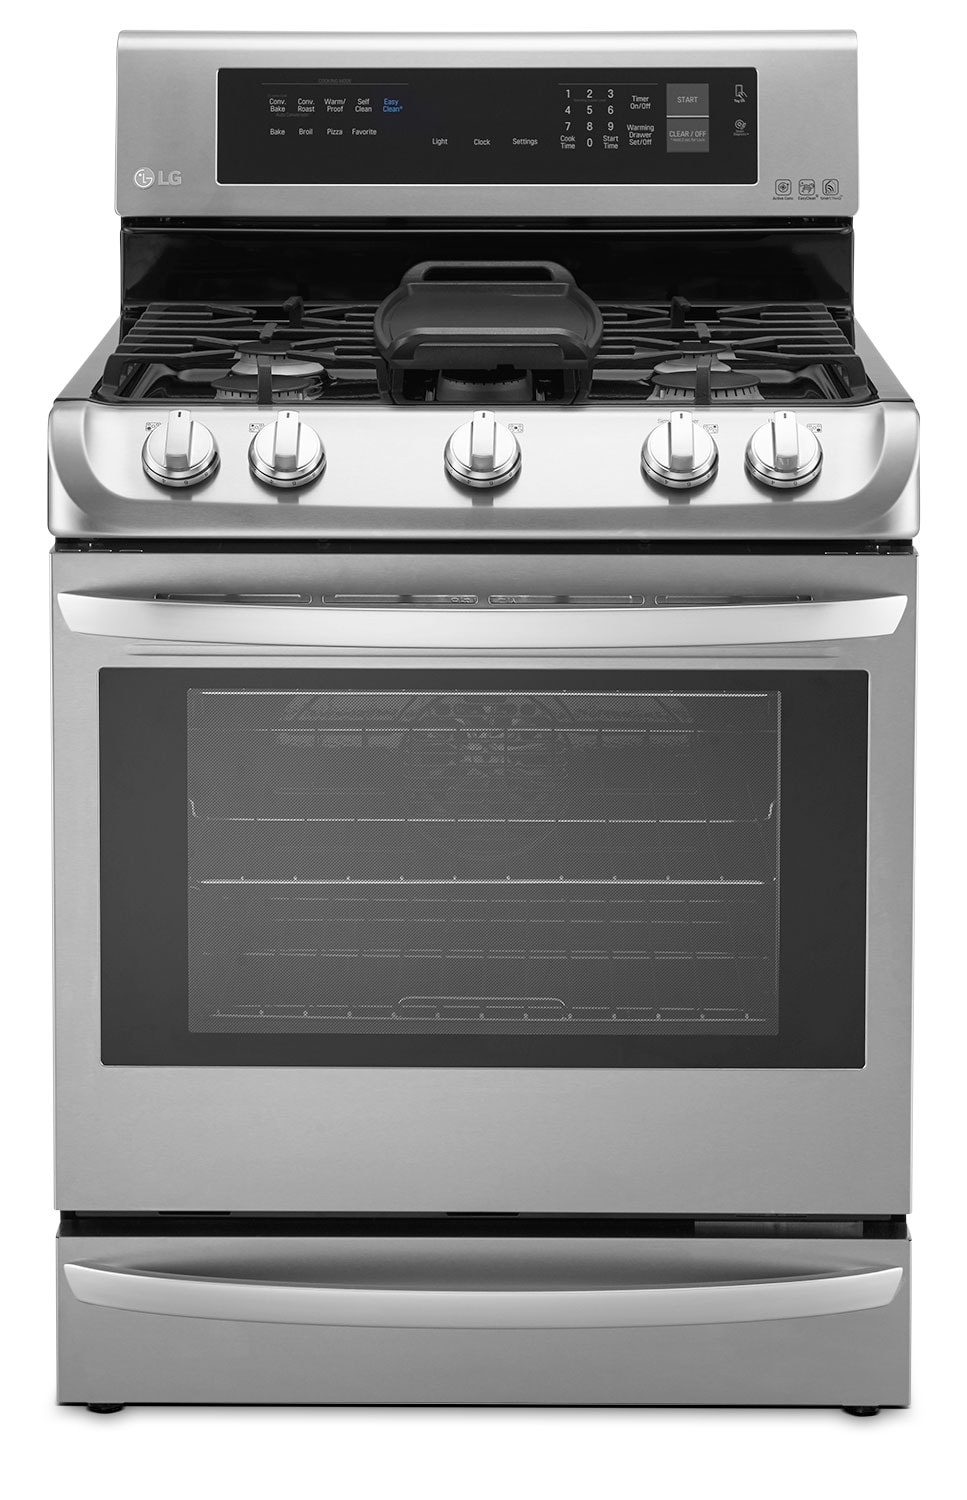 LG 6.3 Cu. Ft. Freestanding Gas Convection Range – Stainless Steel